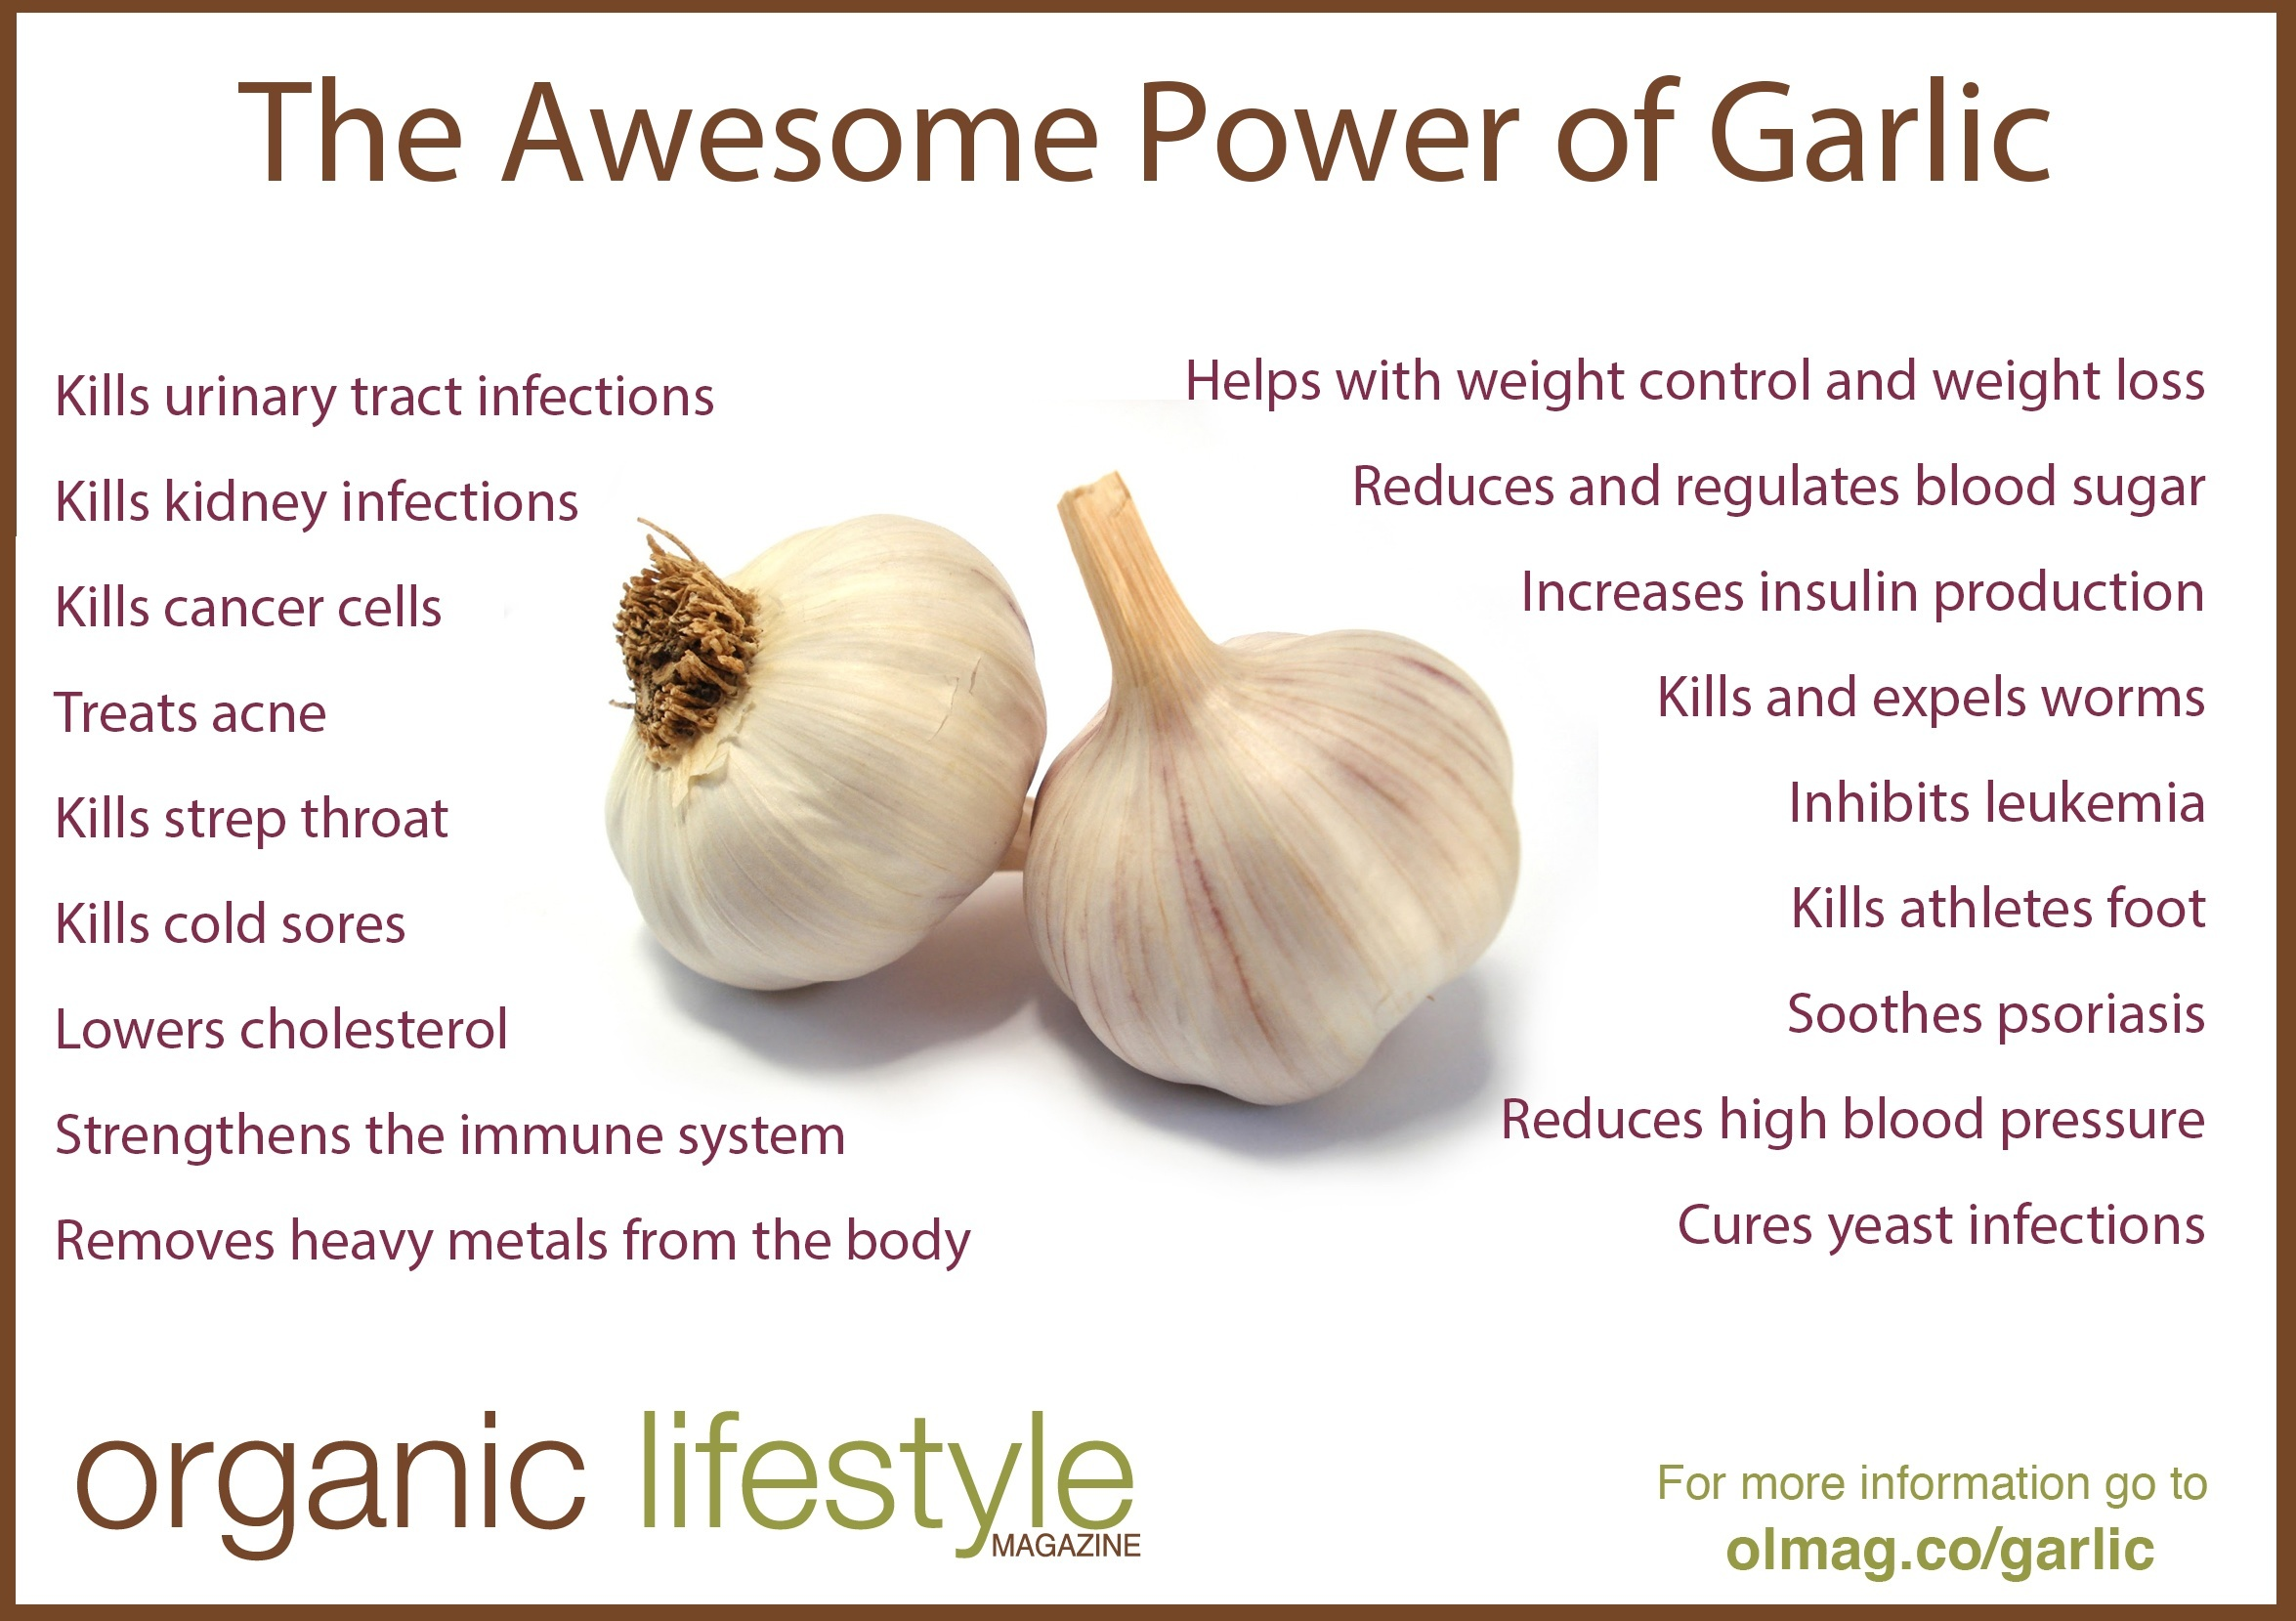 garlic-infographic.jpg